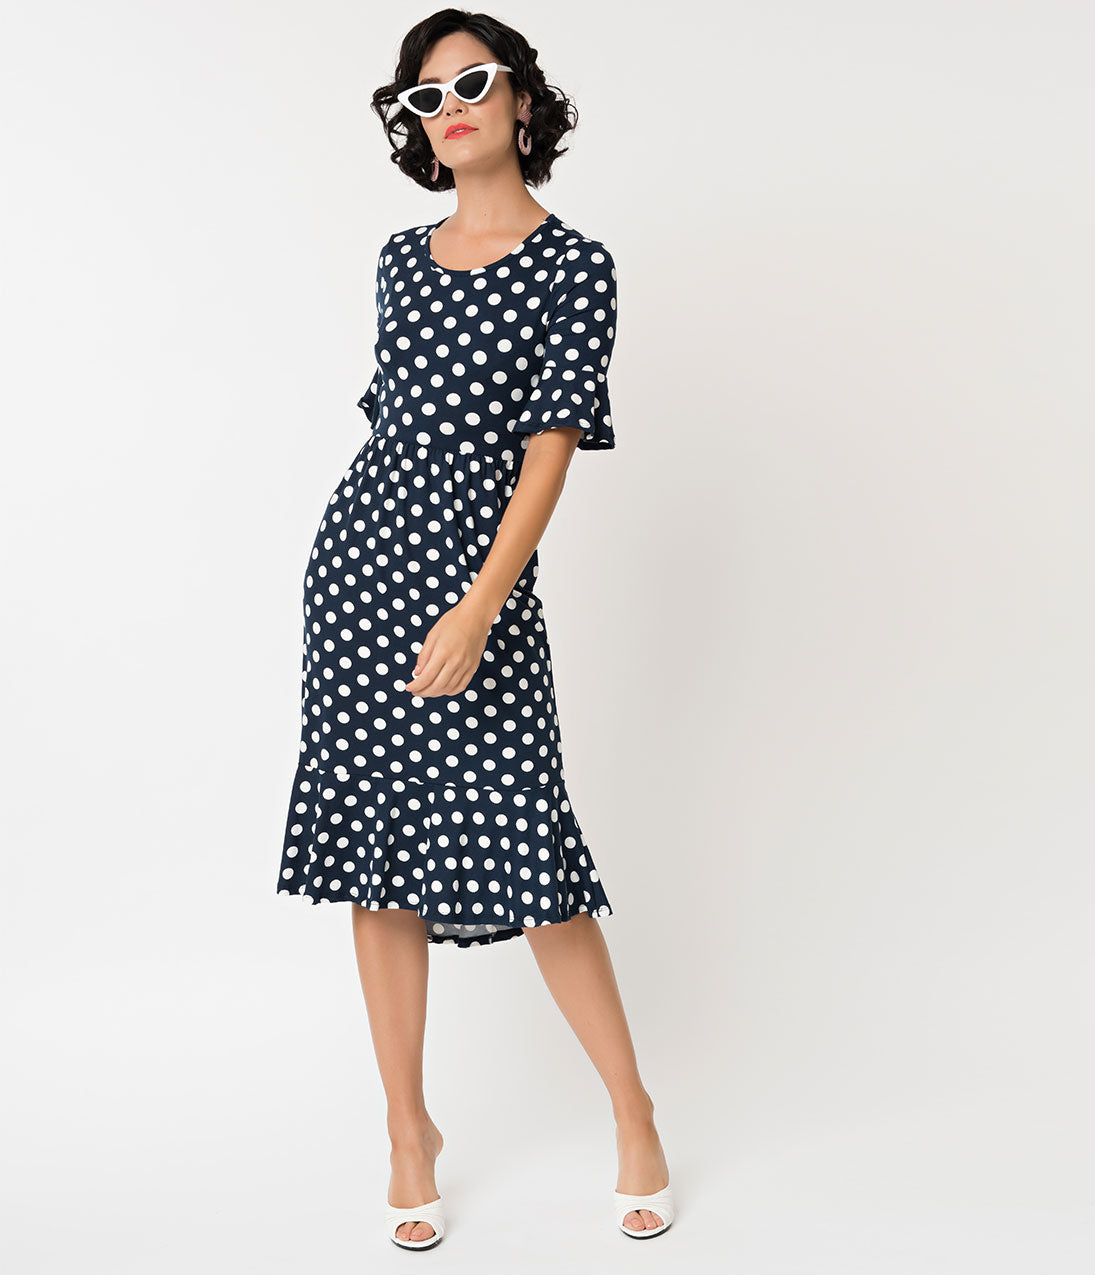 Polka Dot Dresses: 20s, 30s, 40s, 50s, 60s Retro Style Navy  White Polka Dot Bell Sleeve Dress $48.00 AT vintagedancer.com